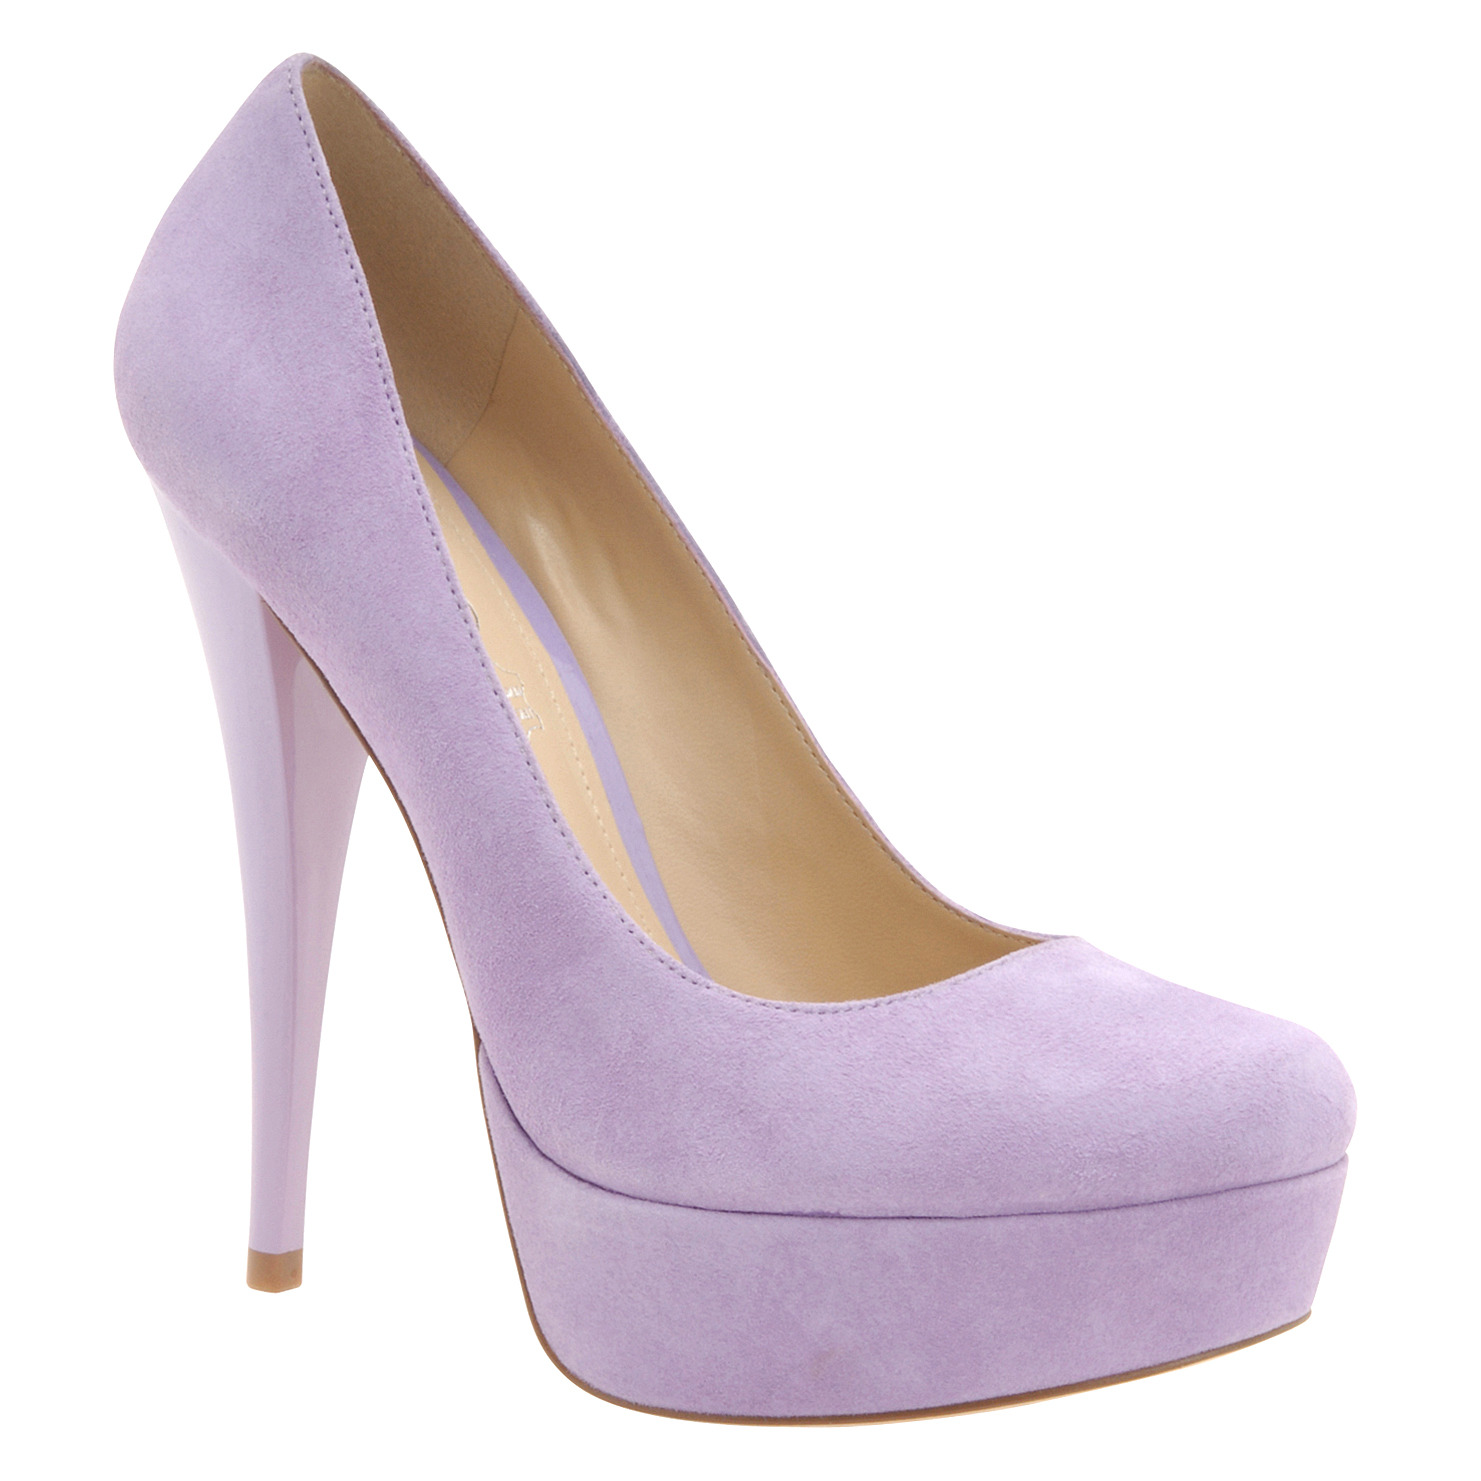 Lilac Shurkus at Aldo Shoes, $90